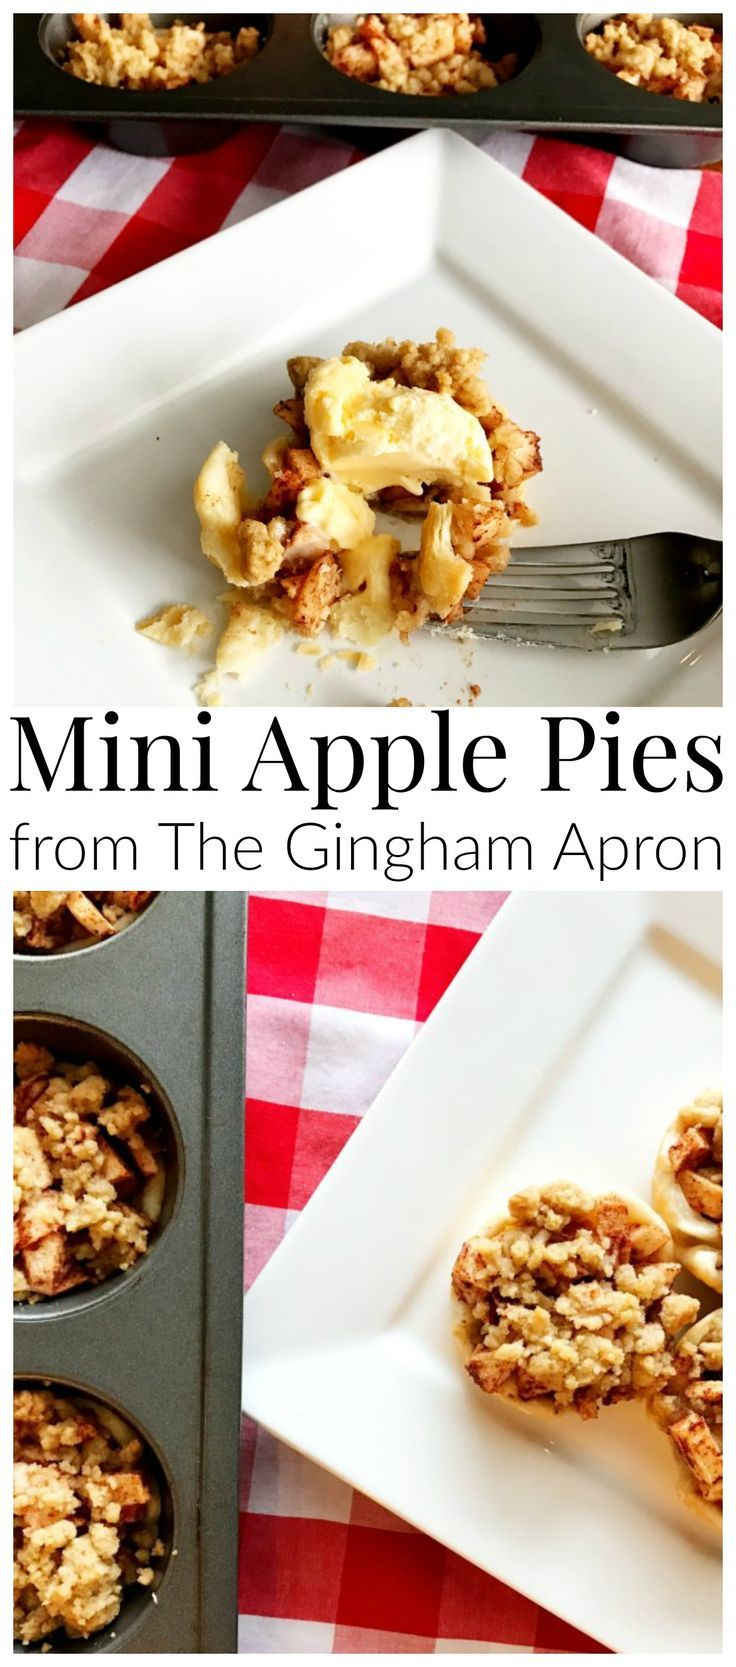 Mini Apple Pies- a fun and easy way to enjoy the best of fall's apples. #applepie #fall